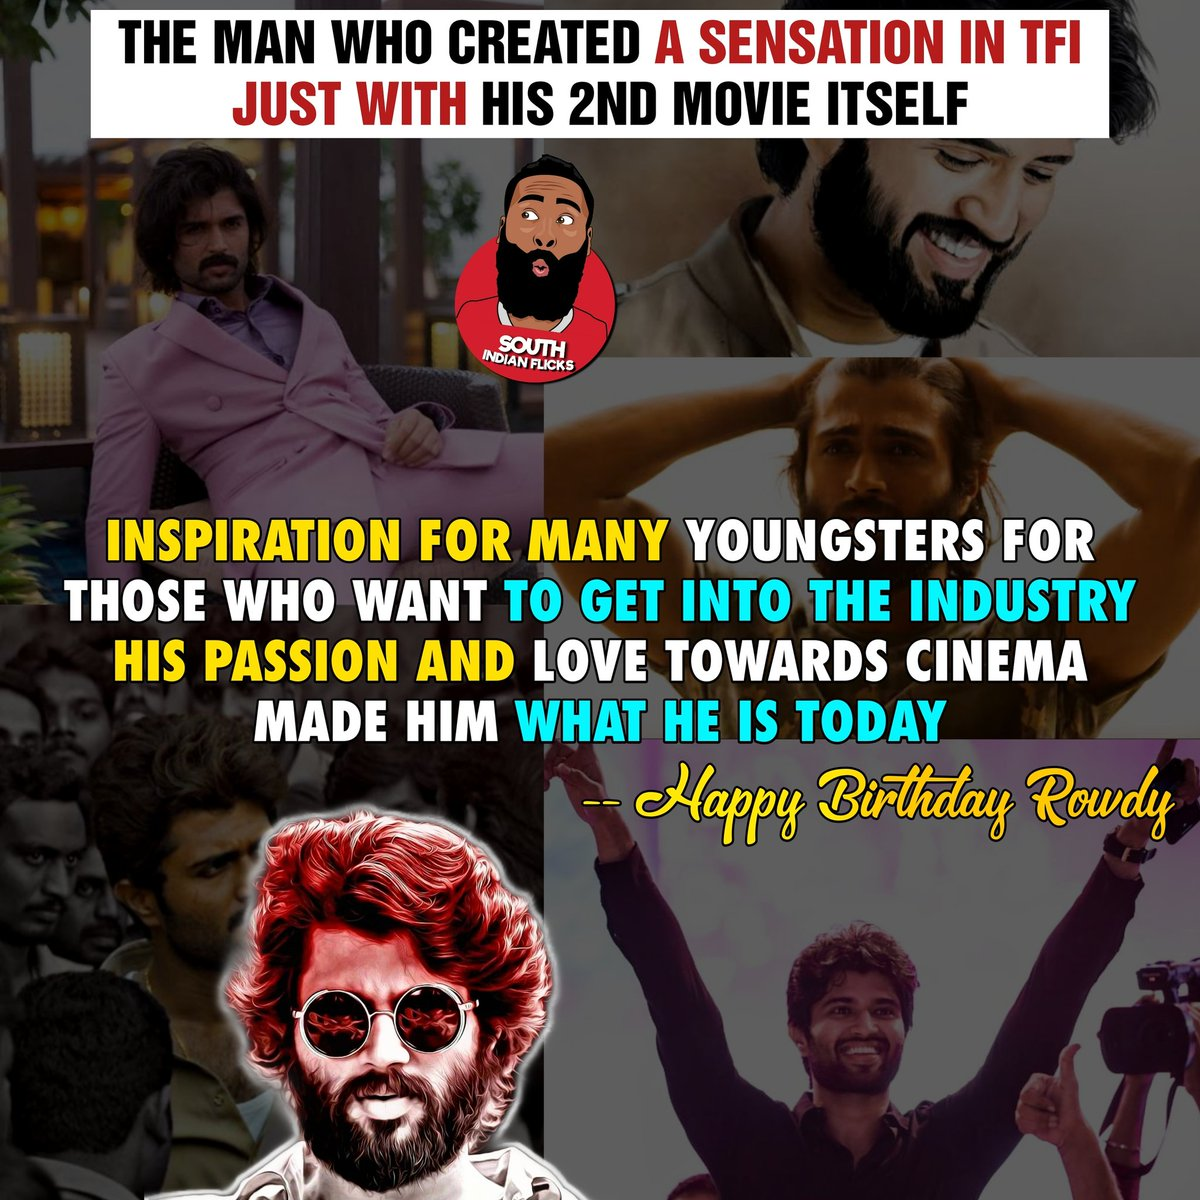 "In one sentence "" ROWDY can be trolled but can't be hated"" #HappyBirthdayVijayDeverakonda #HappyBirthdayRowdy #RowdyVijayBdayCDP #Rowdy #RowdyVijayBday #teamdeverakonda #vijayfc #VijayDeverakonda #VijayDevarakondafc #Tollywood #fighter  Do follow @SIFlickspic.twitter.com/EbV4qs9sh1"